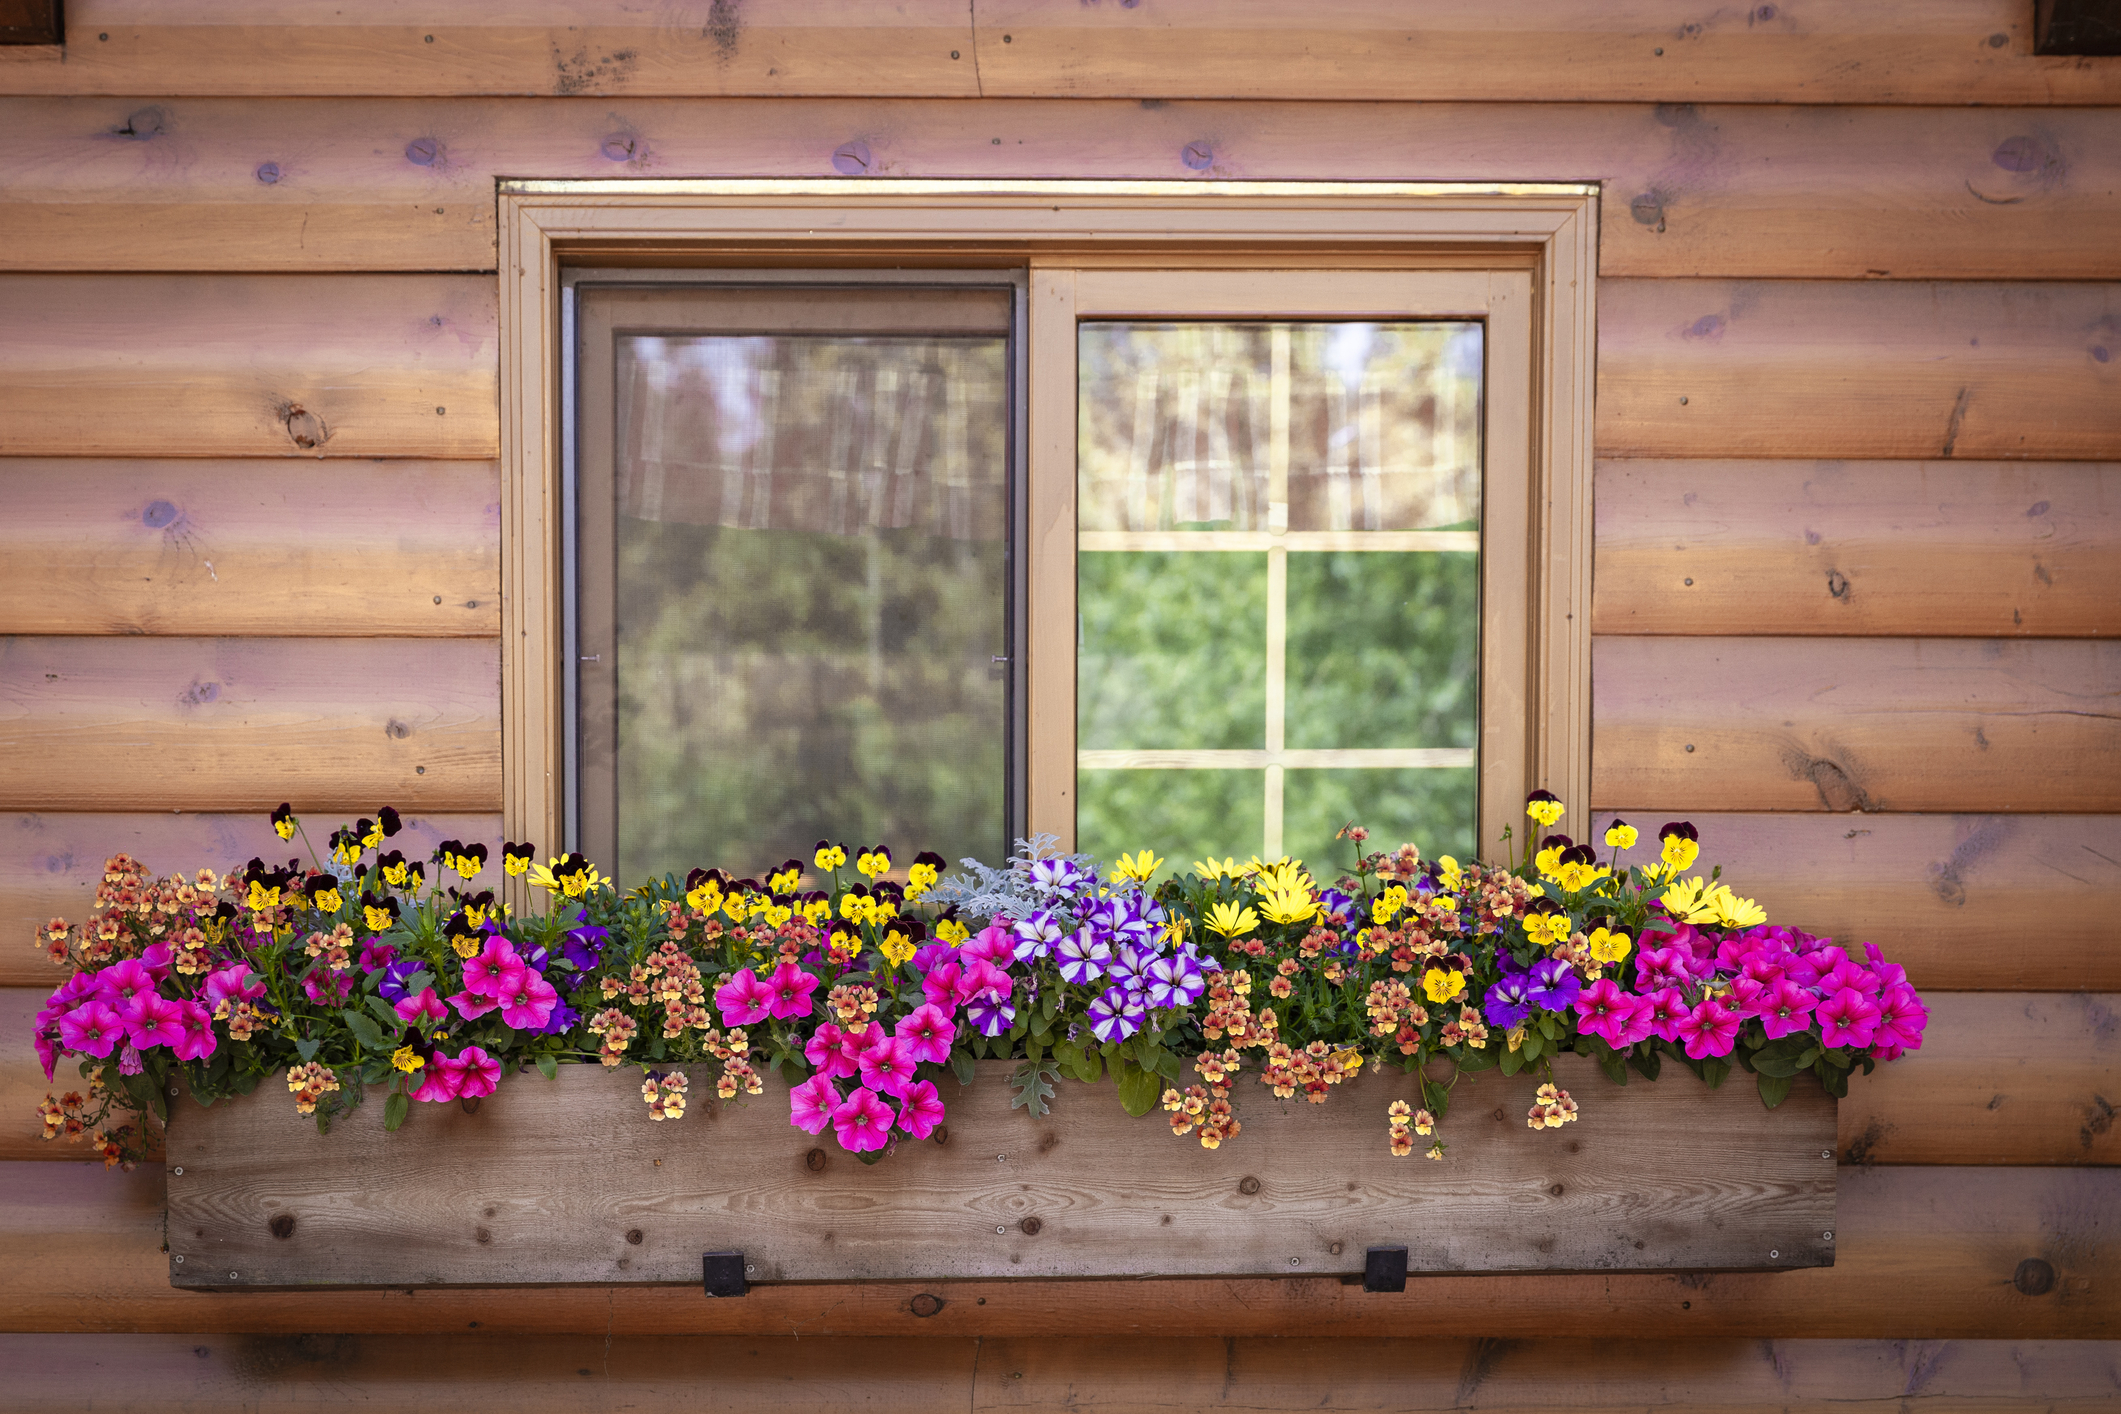 Putting together beautiful flower combinations is one of my favorite parts of landscaping. And now that Summer is in full swing, why not get your home looking beautiful? All you need are these great ideas for flower combinations! You will love them!